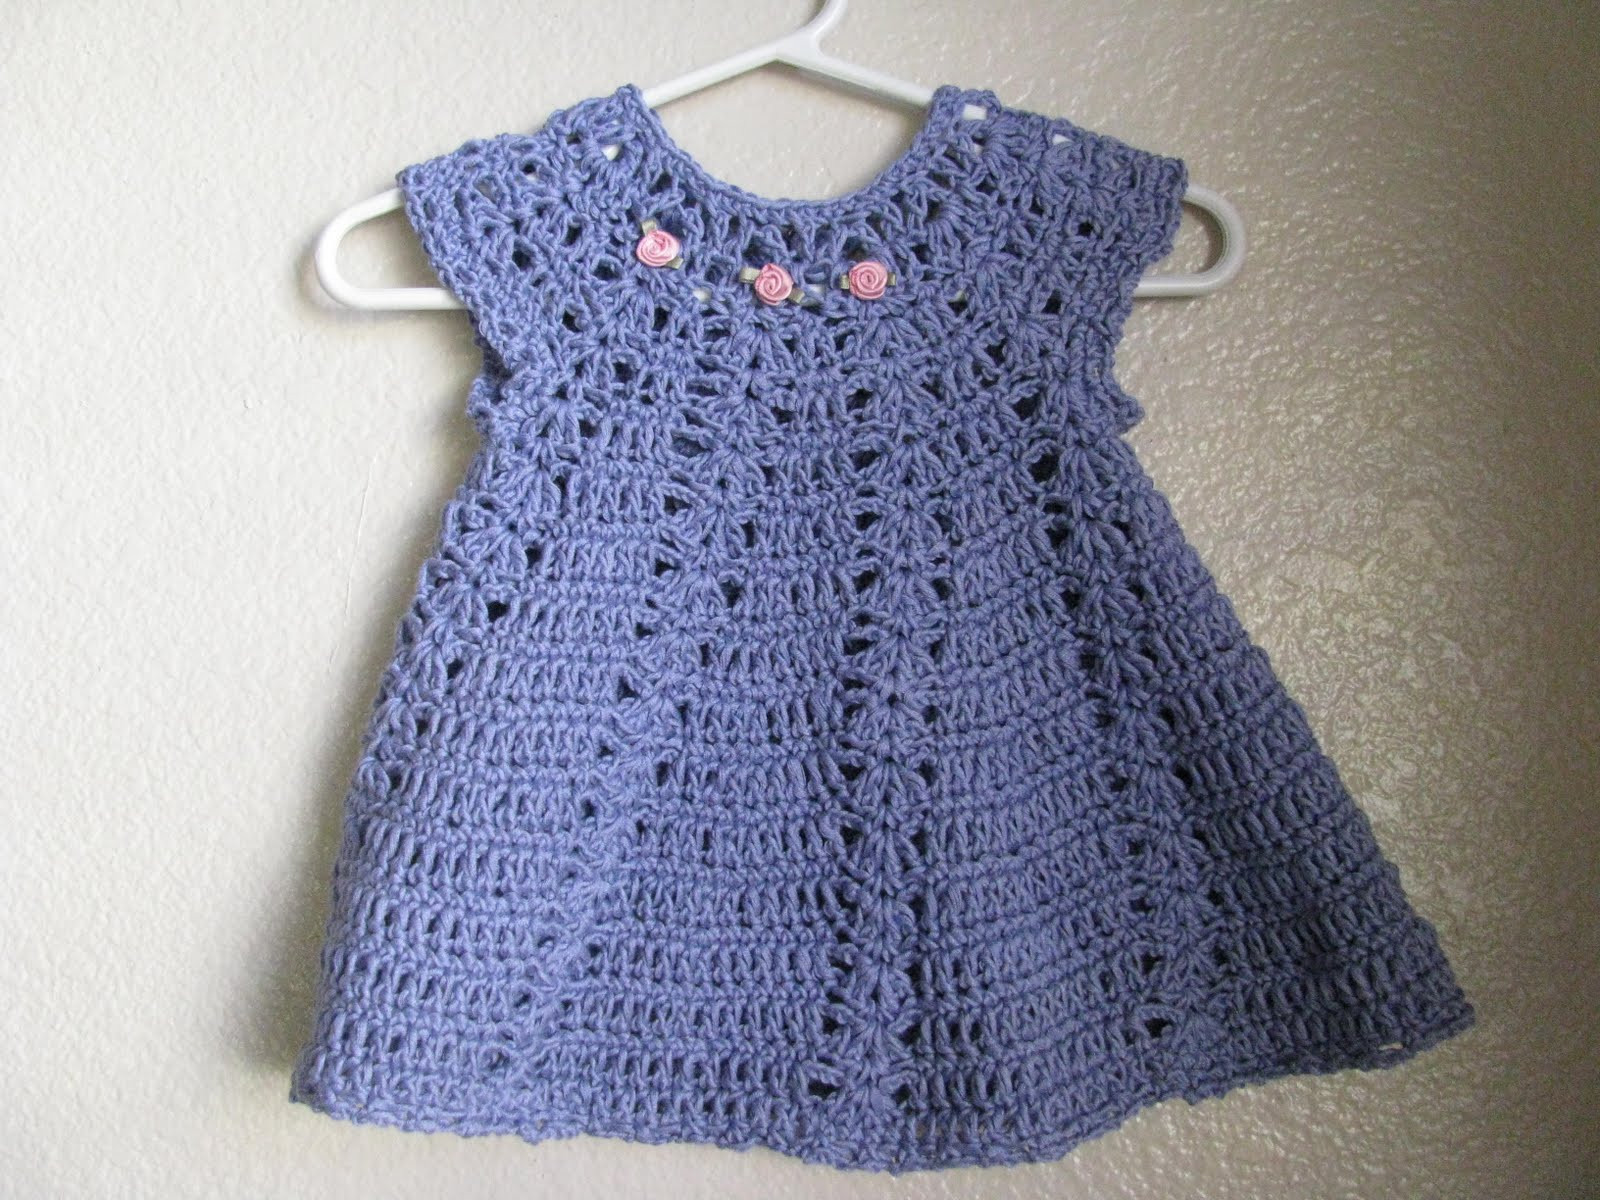 Crochet Baby Clothing Inspirational Baby Crochet Dress Pattern Pineapple – Crochet Patterns Of Amazing 44 Ideas Crochet Baby Clothing